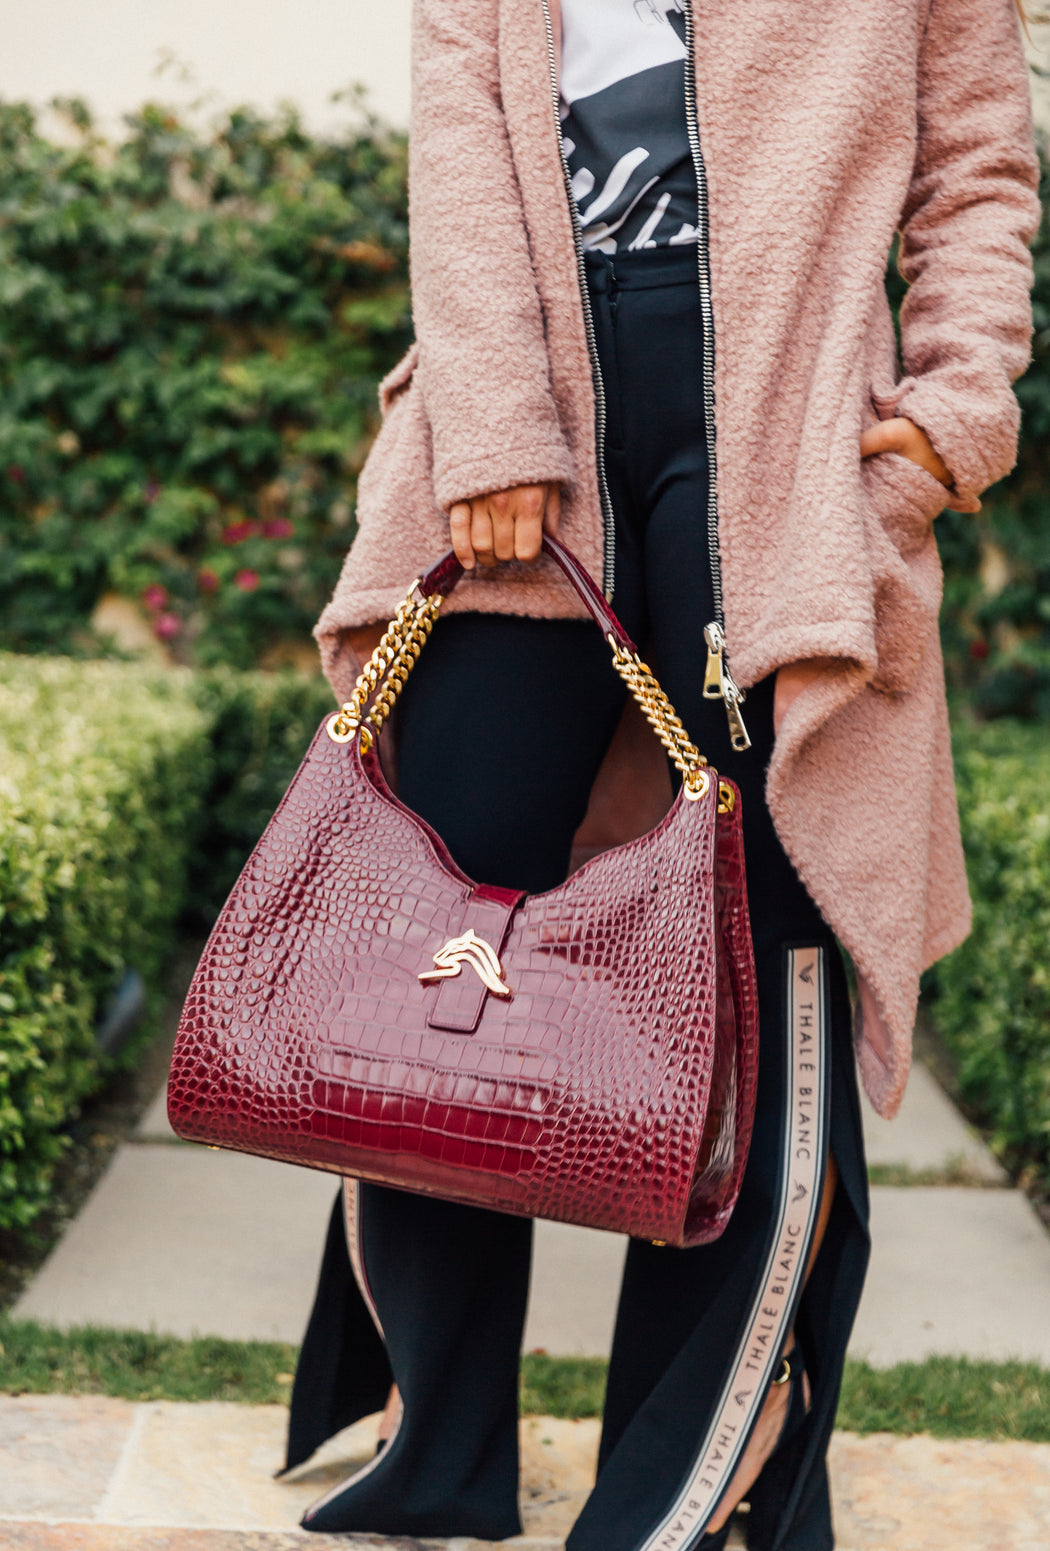 Woman holding a bordeaux-colored designer hobo bag in croc-embossed leather